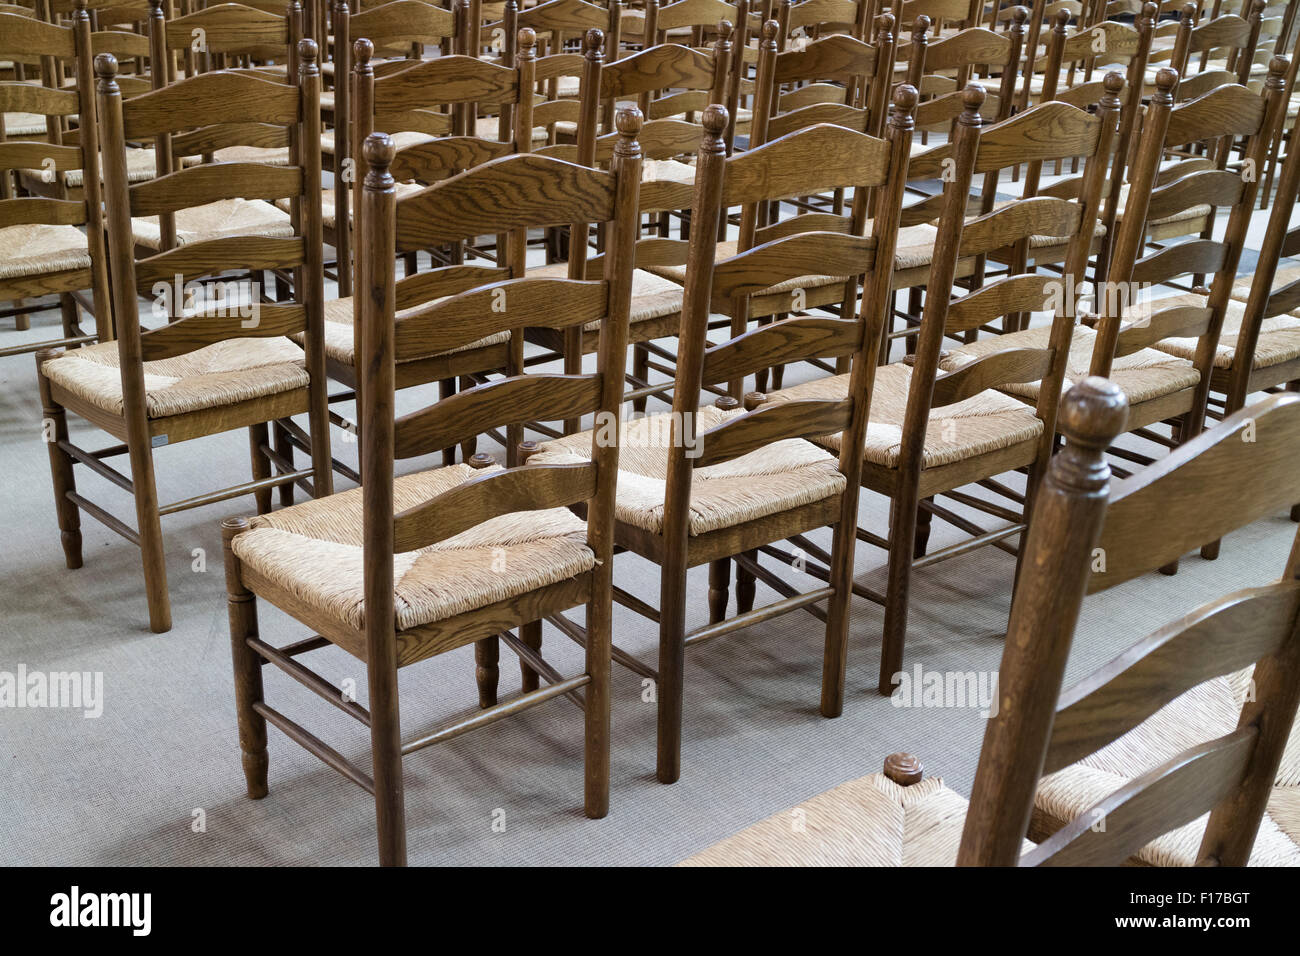 Empty church chairs in the Sint-Michielskerk in Ghend, Belgium - Stock Image